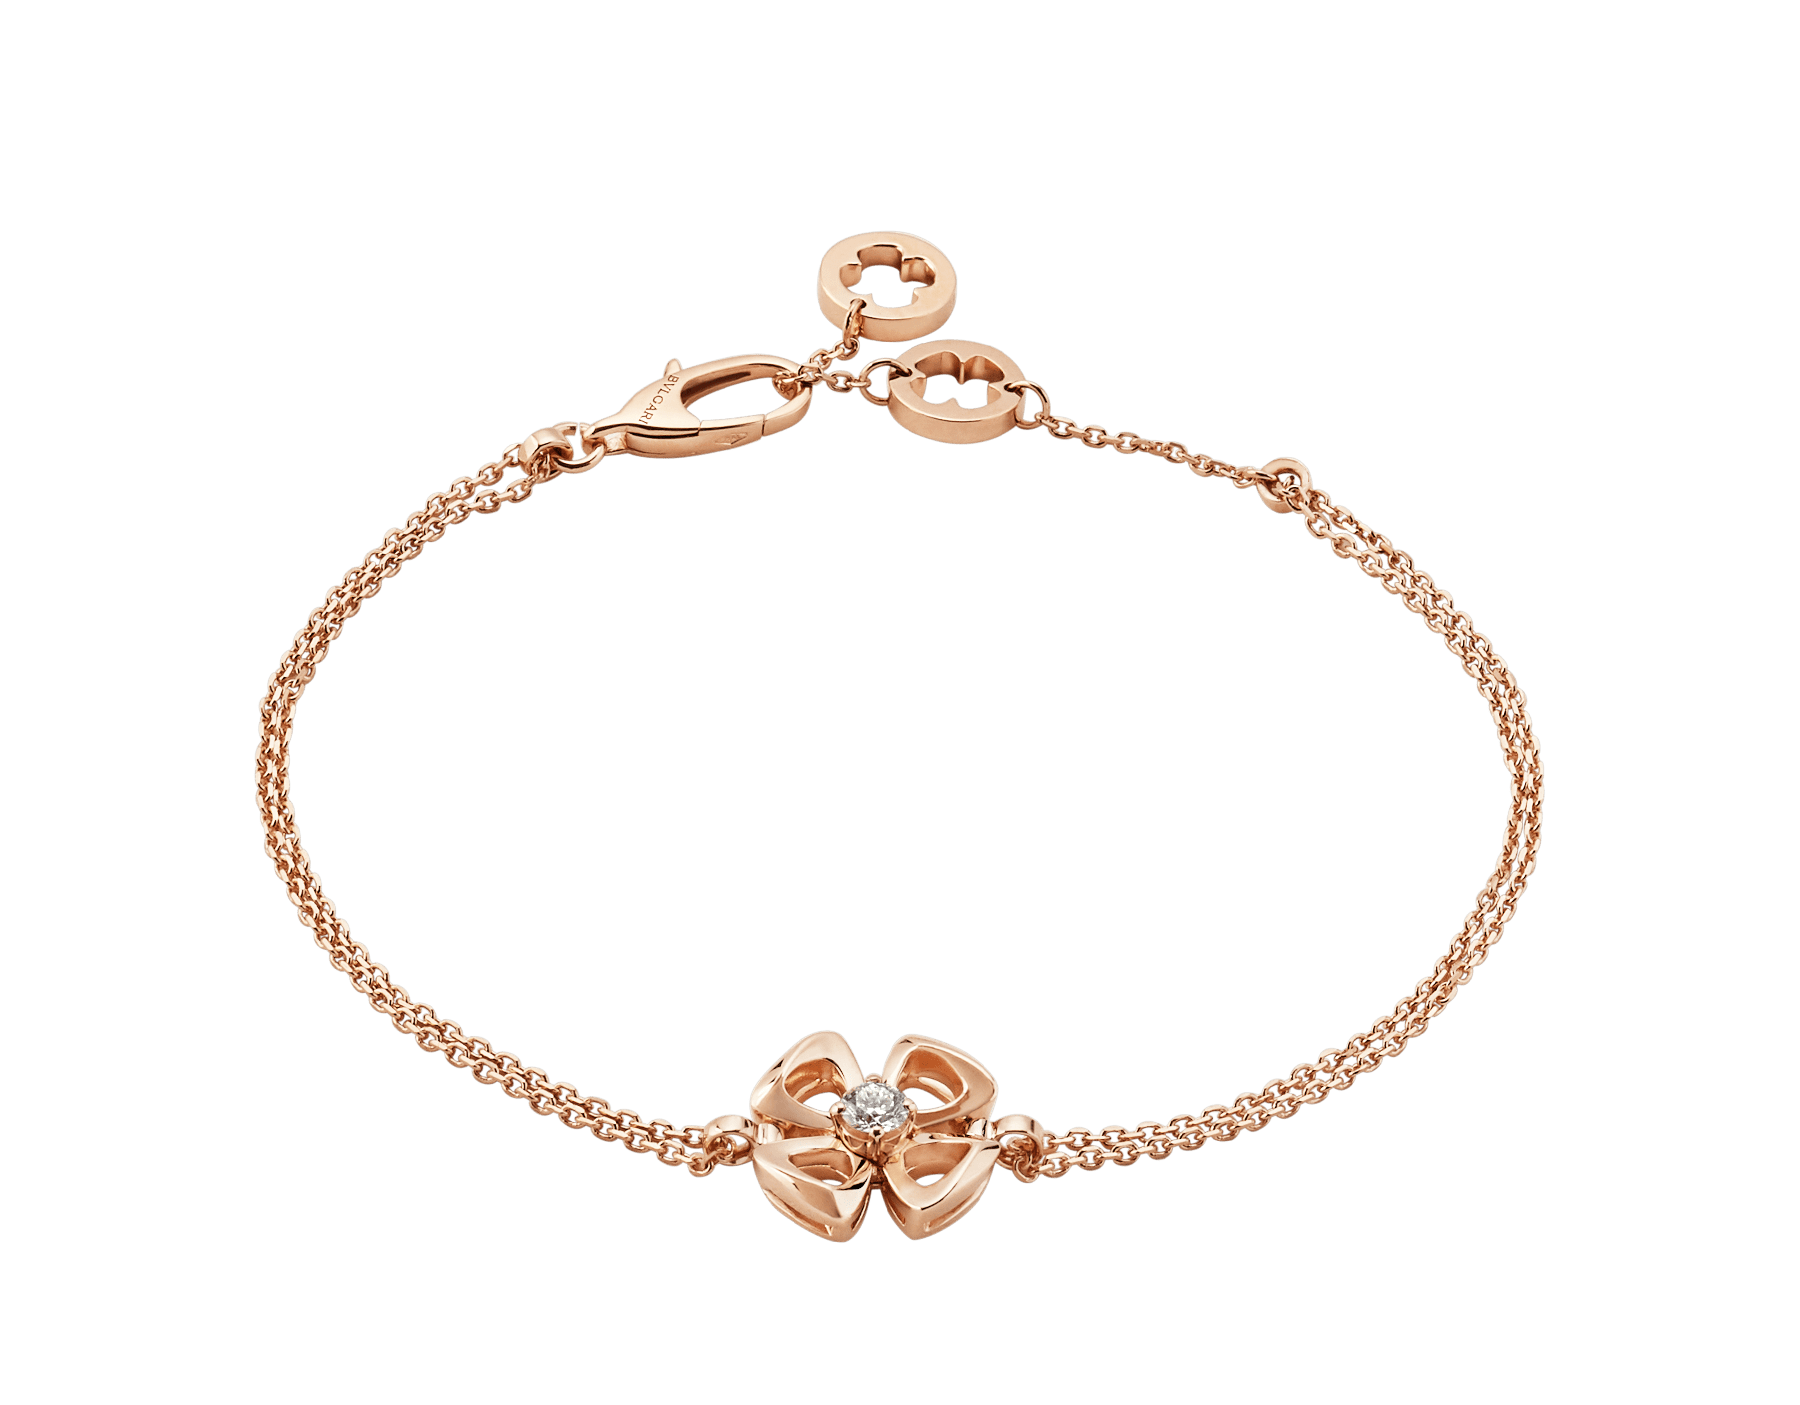 Fiorever 18 kt rose gold bracelet set with a central diamond (0.10 ct) BR858441 image 1